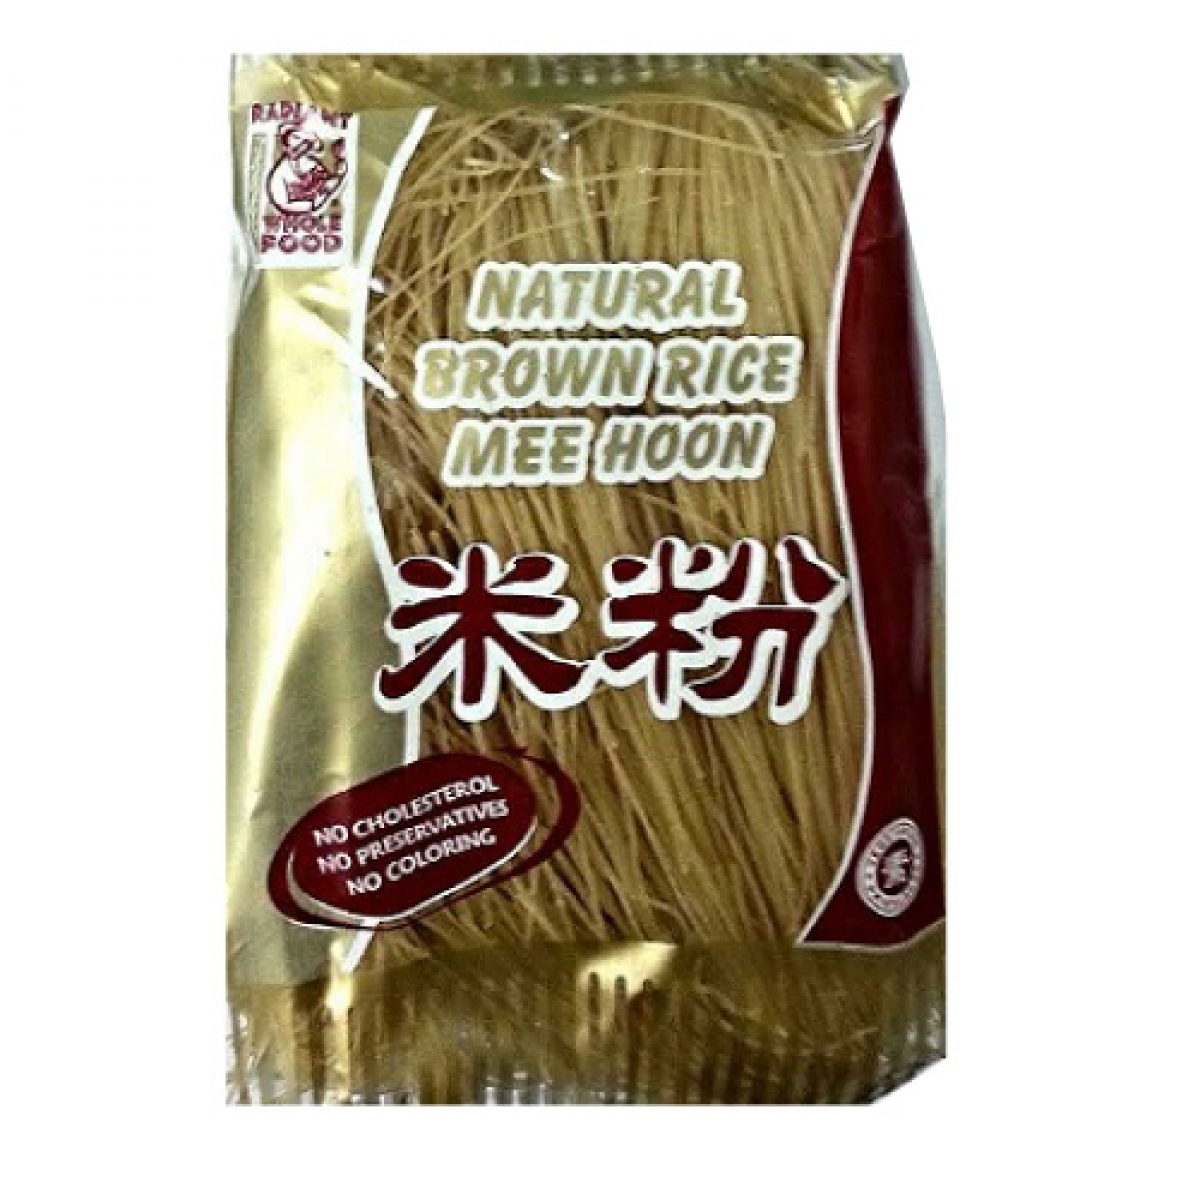 Radiant Natural Brown Rice Meehoon (400g)